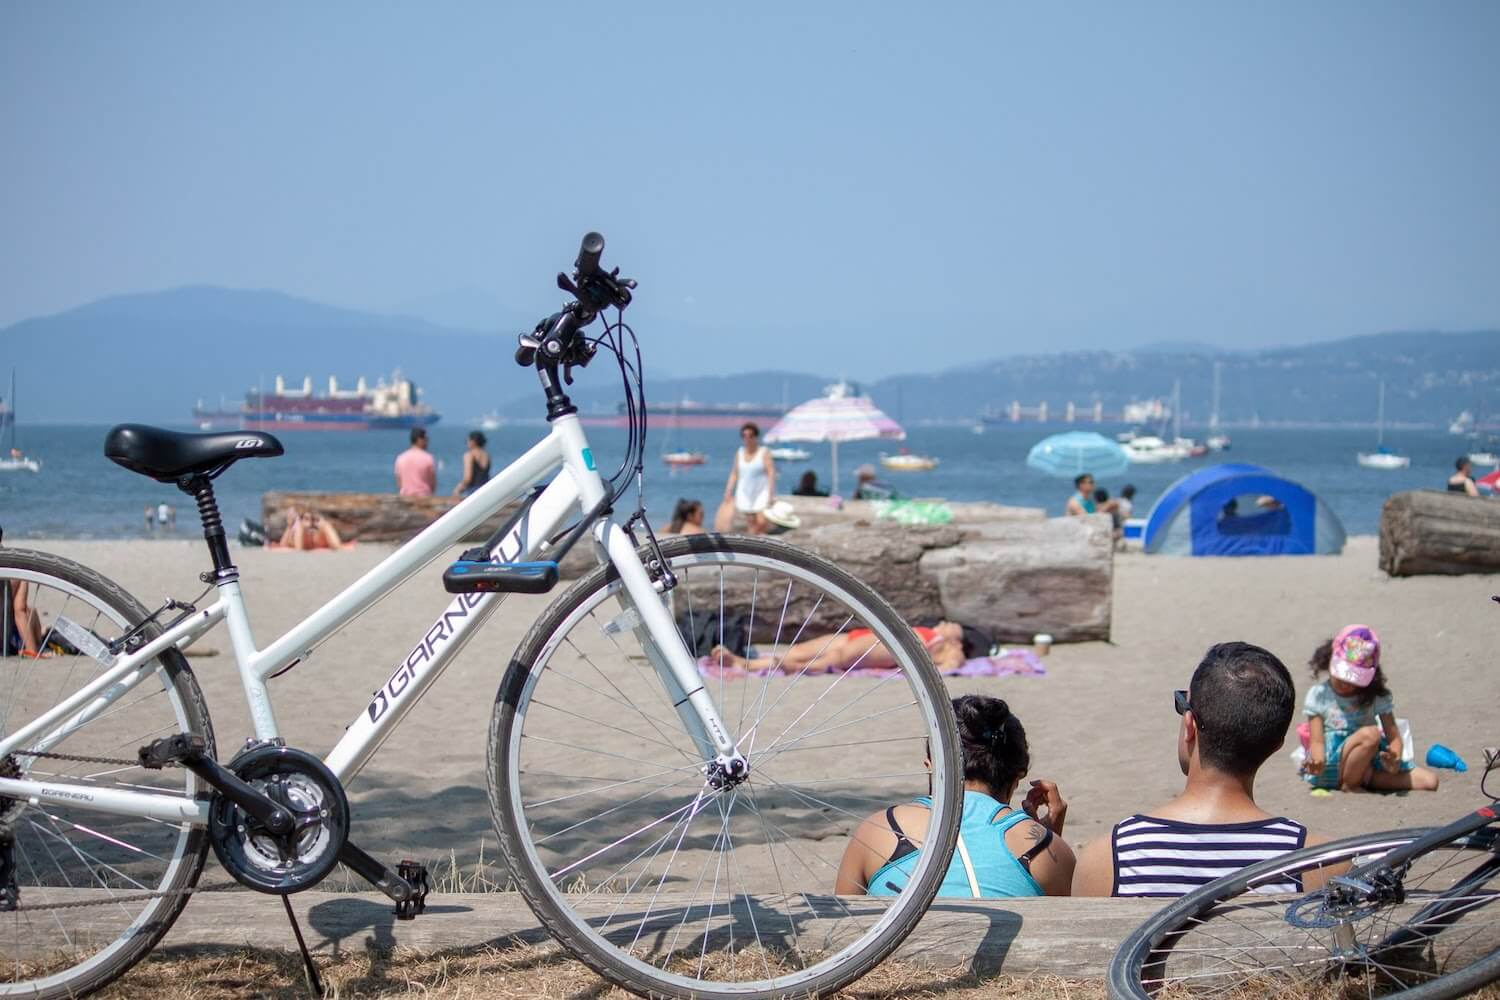 A local's bike at Kitsilano Beach in Vancouver